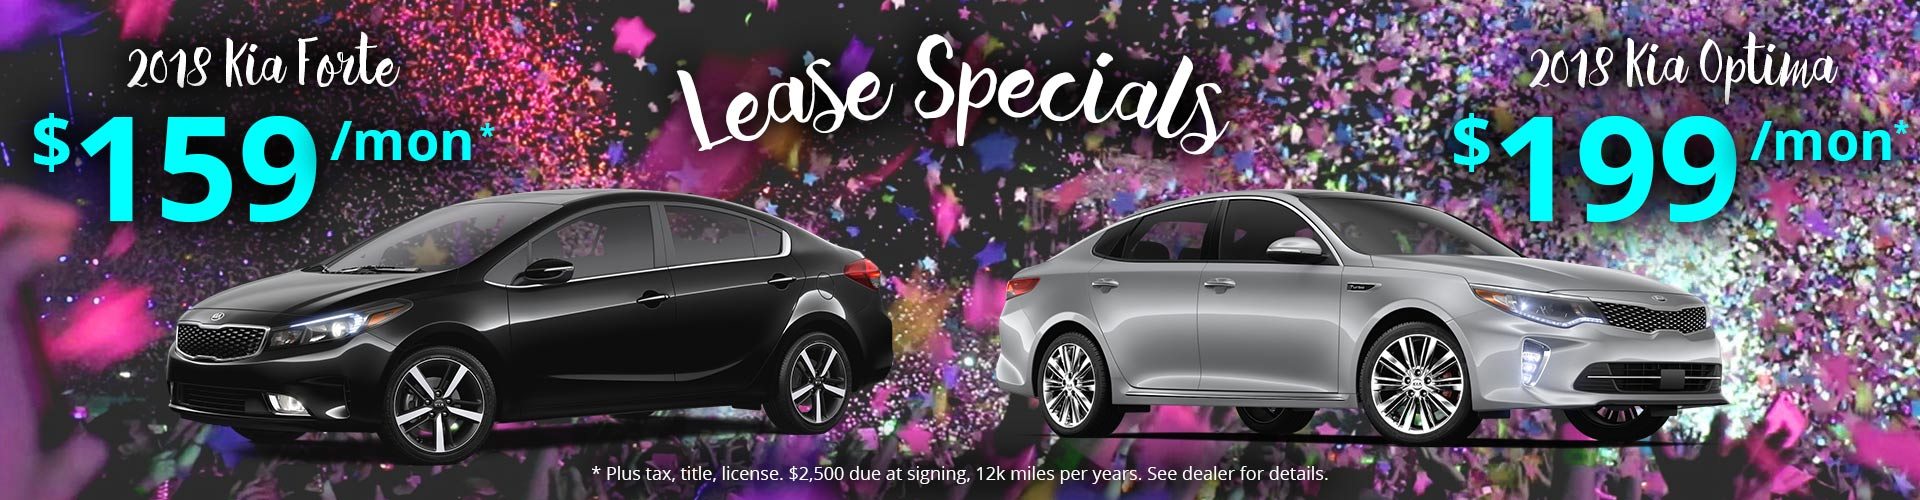 Great Deals on Kia Forte and Optima